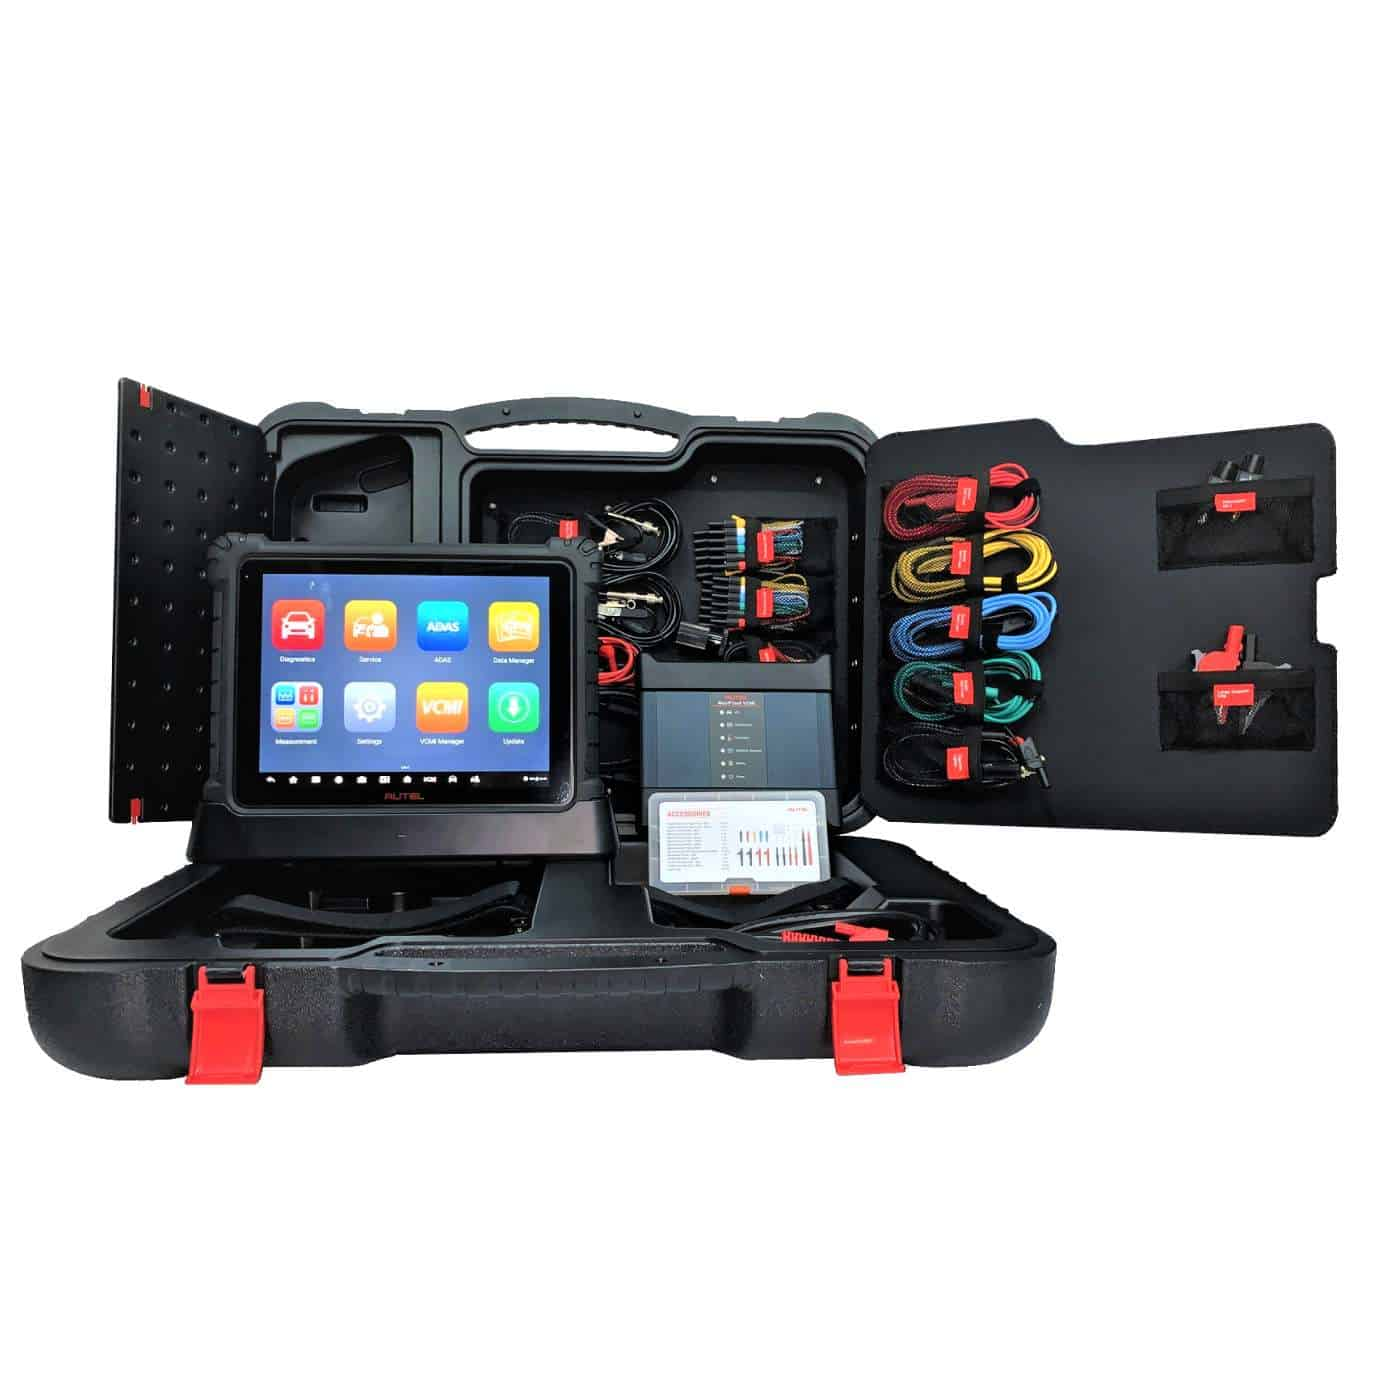 Autel MaxiSYS Ultra | OEM-level Diagnostic Scanner with J2534,  Oscilloscope, Waveform Generator etc | ON PROMO - FREE Updates & Gifts -  SAVE R20500 - AutoSupply.co.za